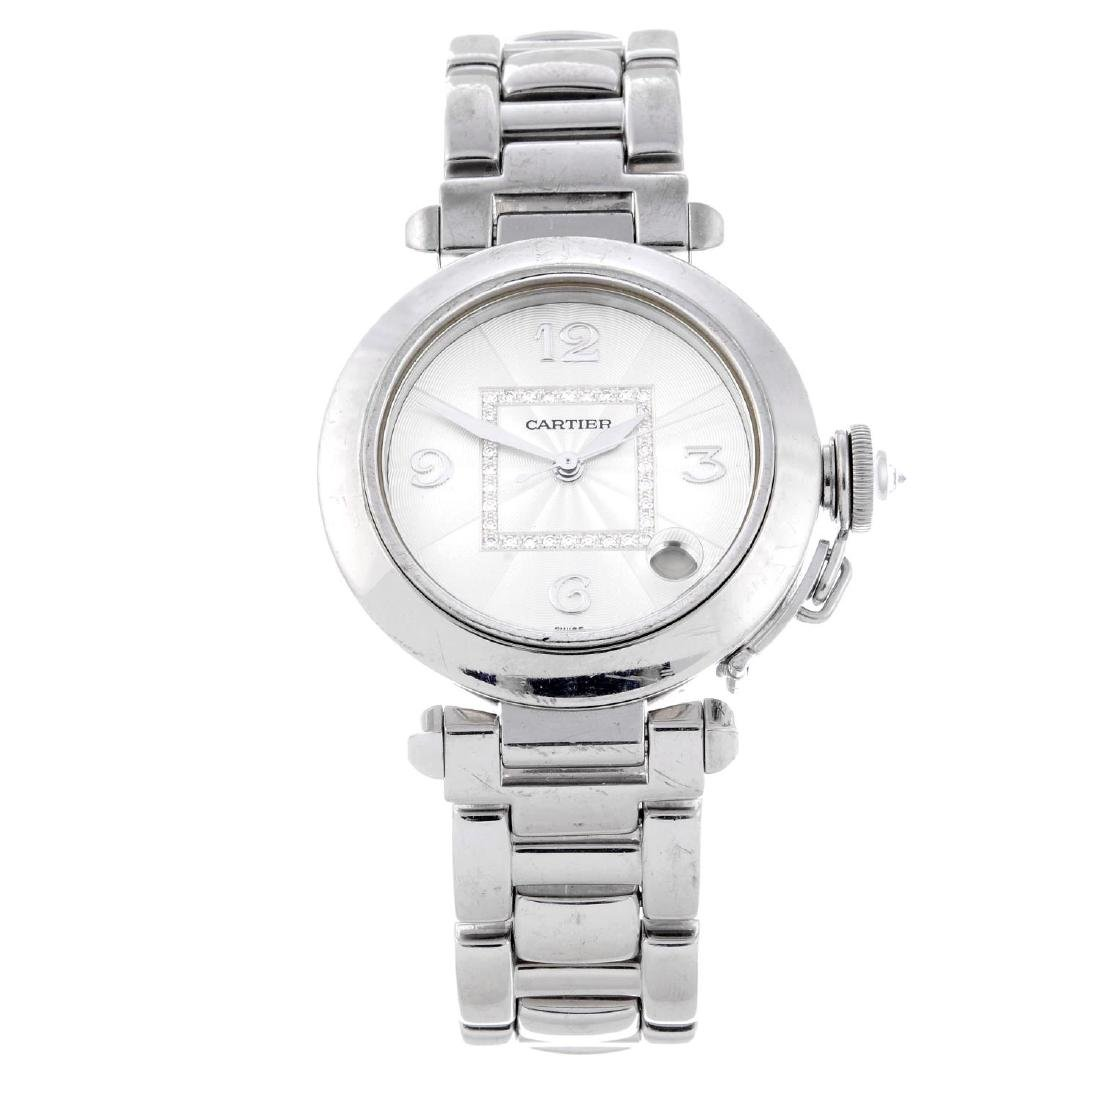 CARTIER - a Pasha bracelet watch. 18ct white gold case.